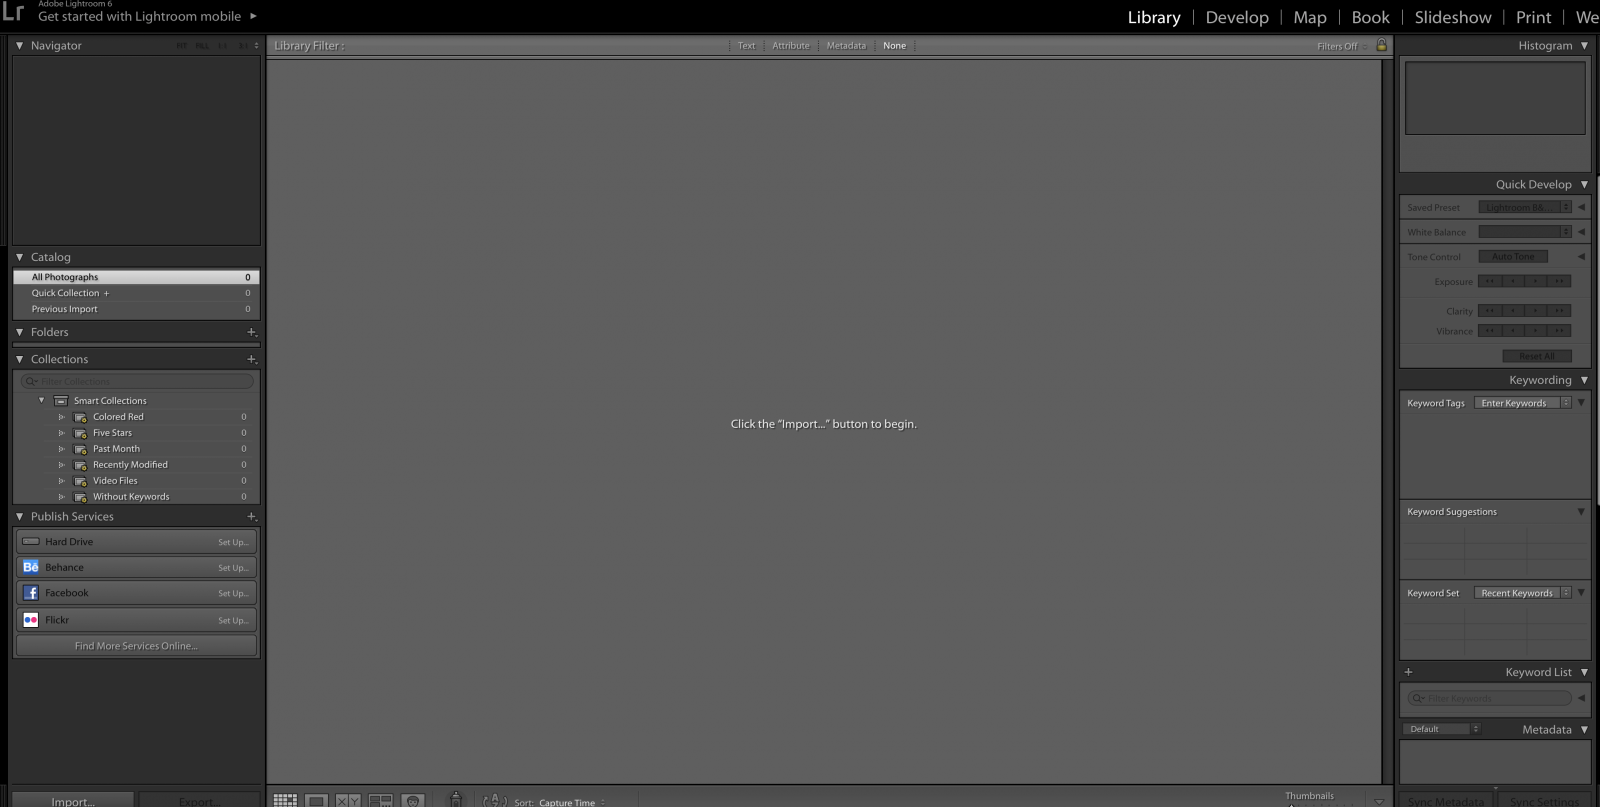 lightroom cc disappeared and now have lightroom mobile on